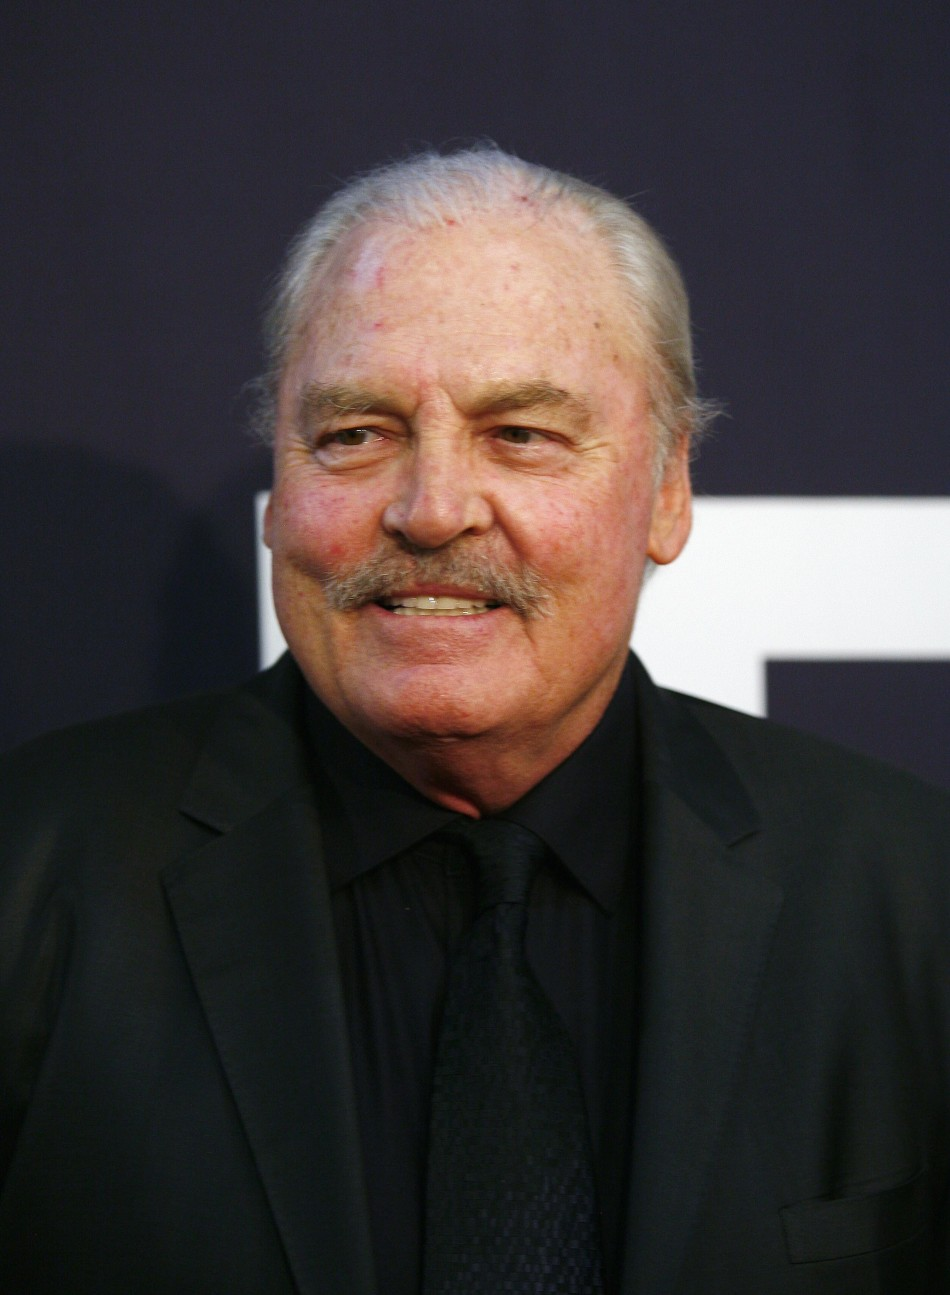 Cast member Keach attends the premiere of the film quotThe Bourne Legacyquot in New York